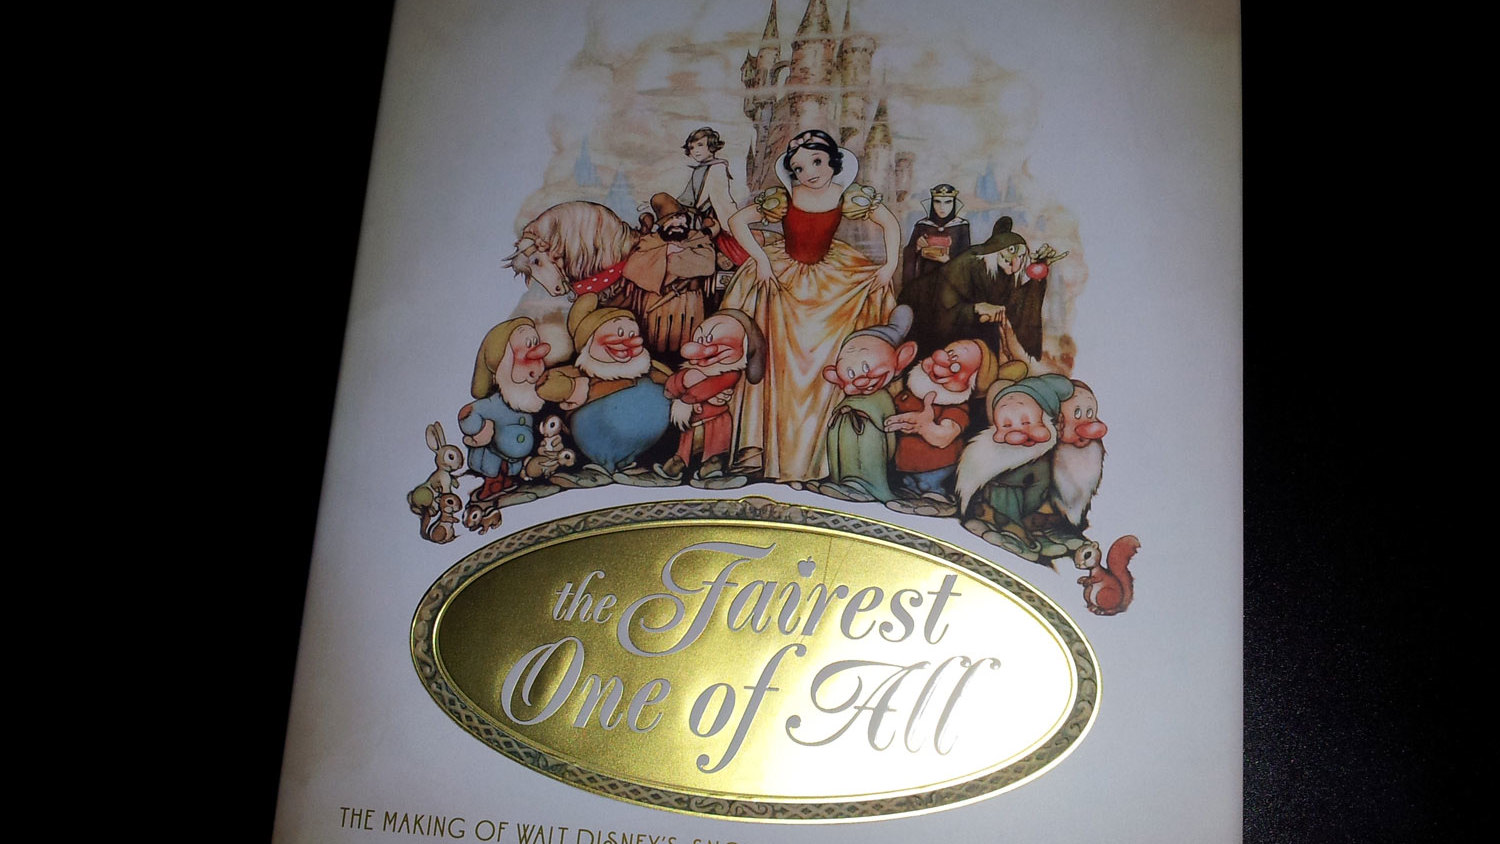 Fraai boek - The Fairest One of All: The Making of Walt Disney's Snow White and the Seven Dwarfs